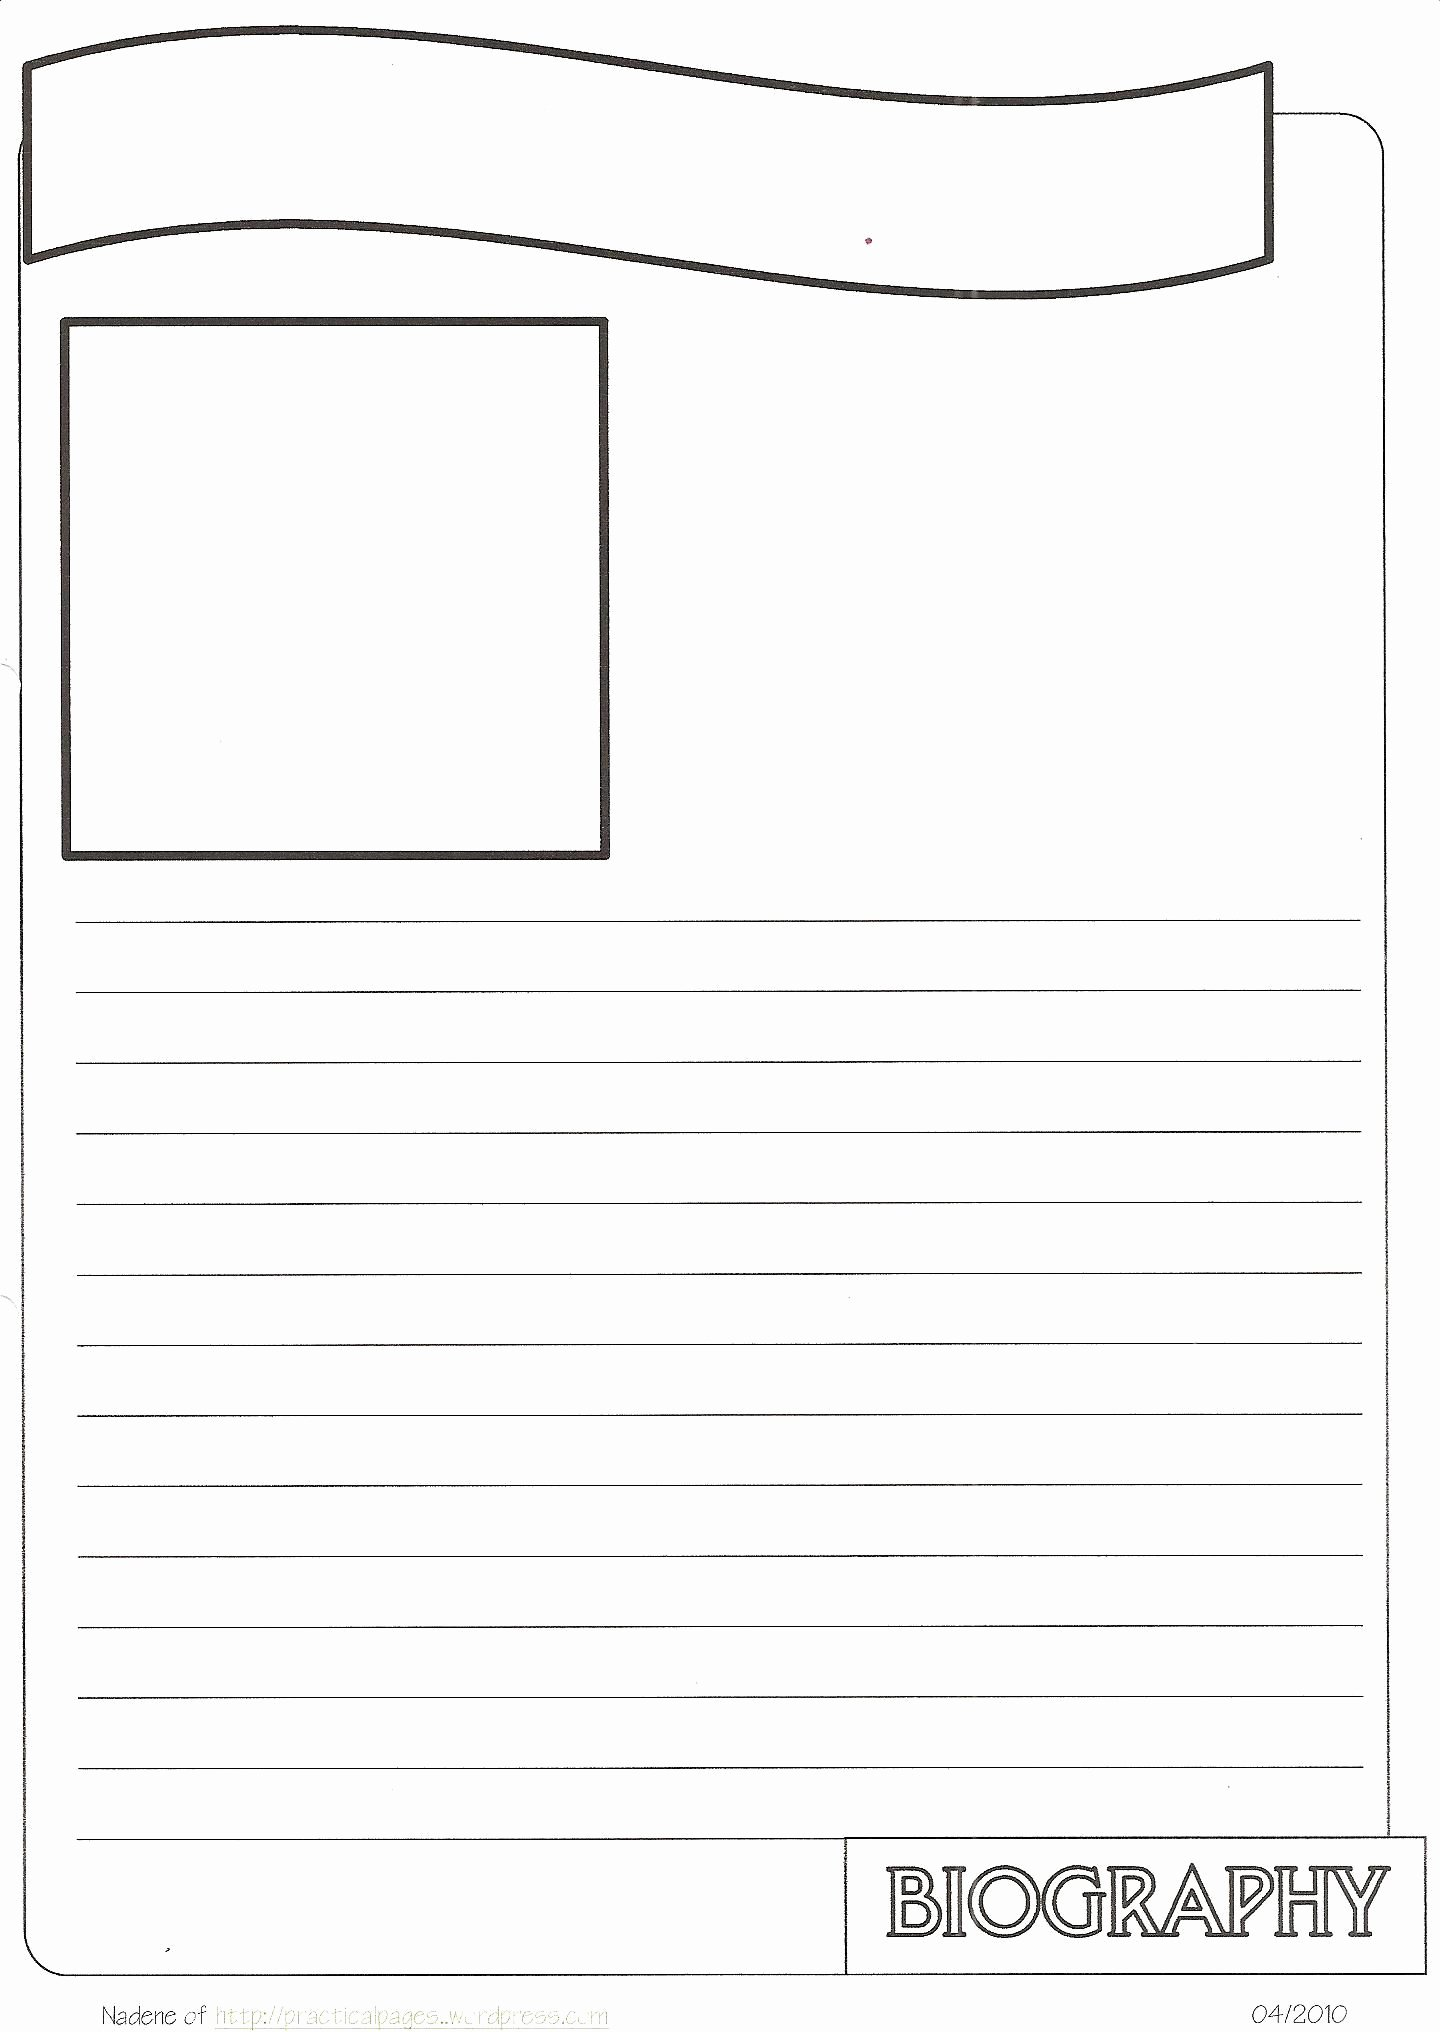 Free Book Writing Template Luxury New Biography Notebook Page Templates